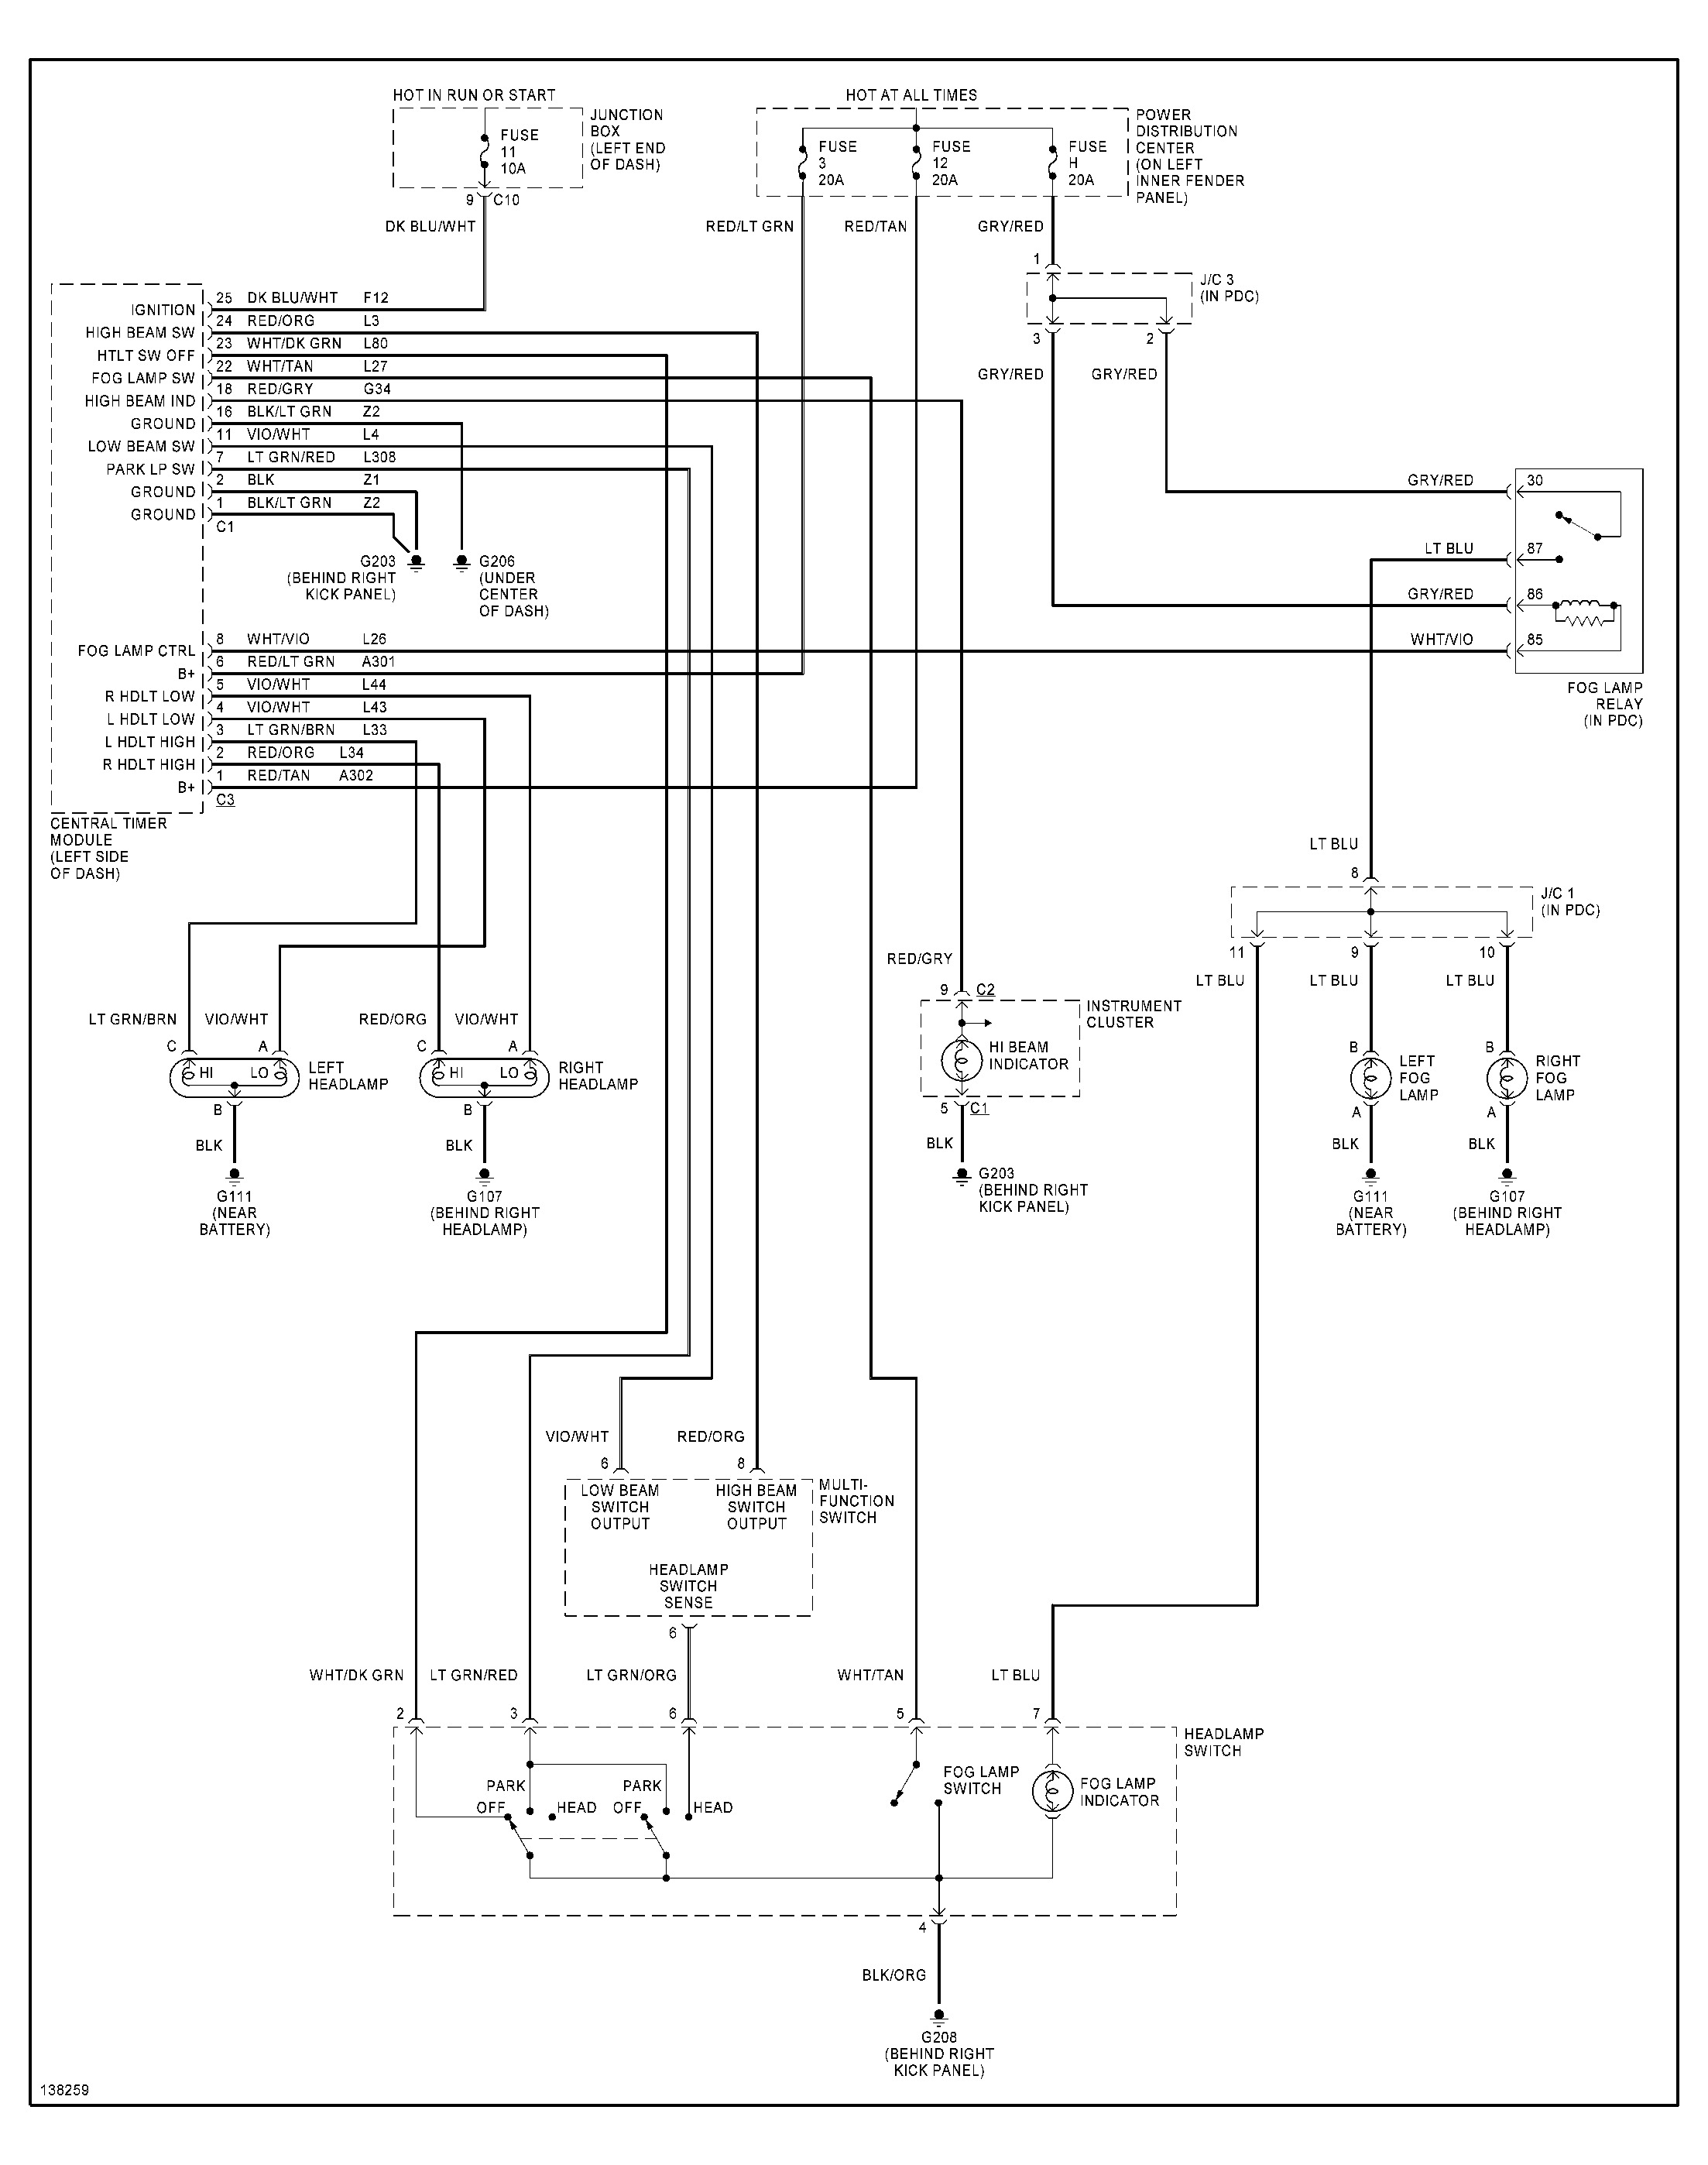 Dodge dakota wiring diagram images